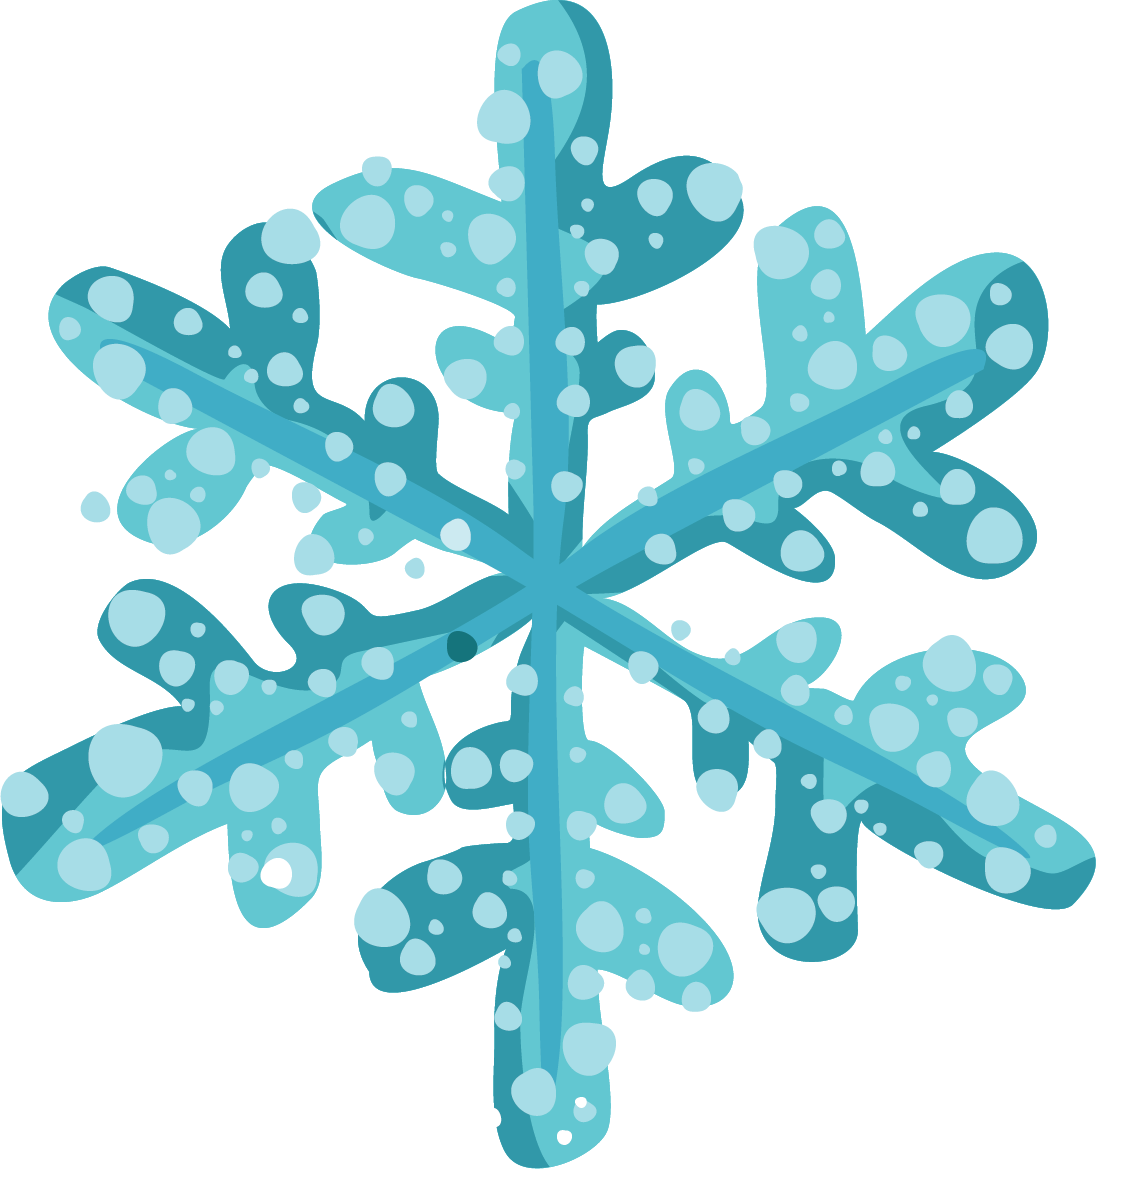 Holiday clipart end. Free christmas snowflake snowflakes